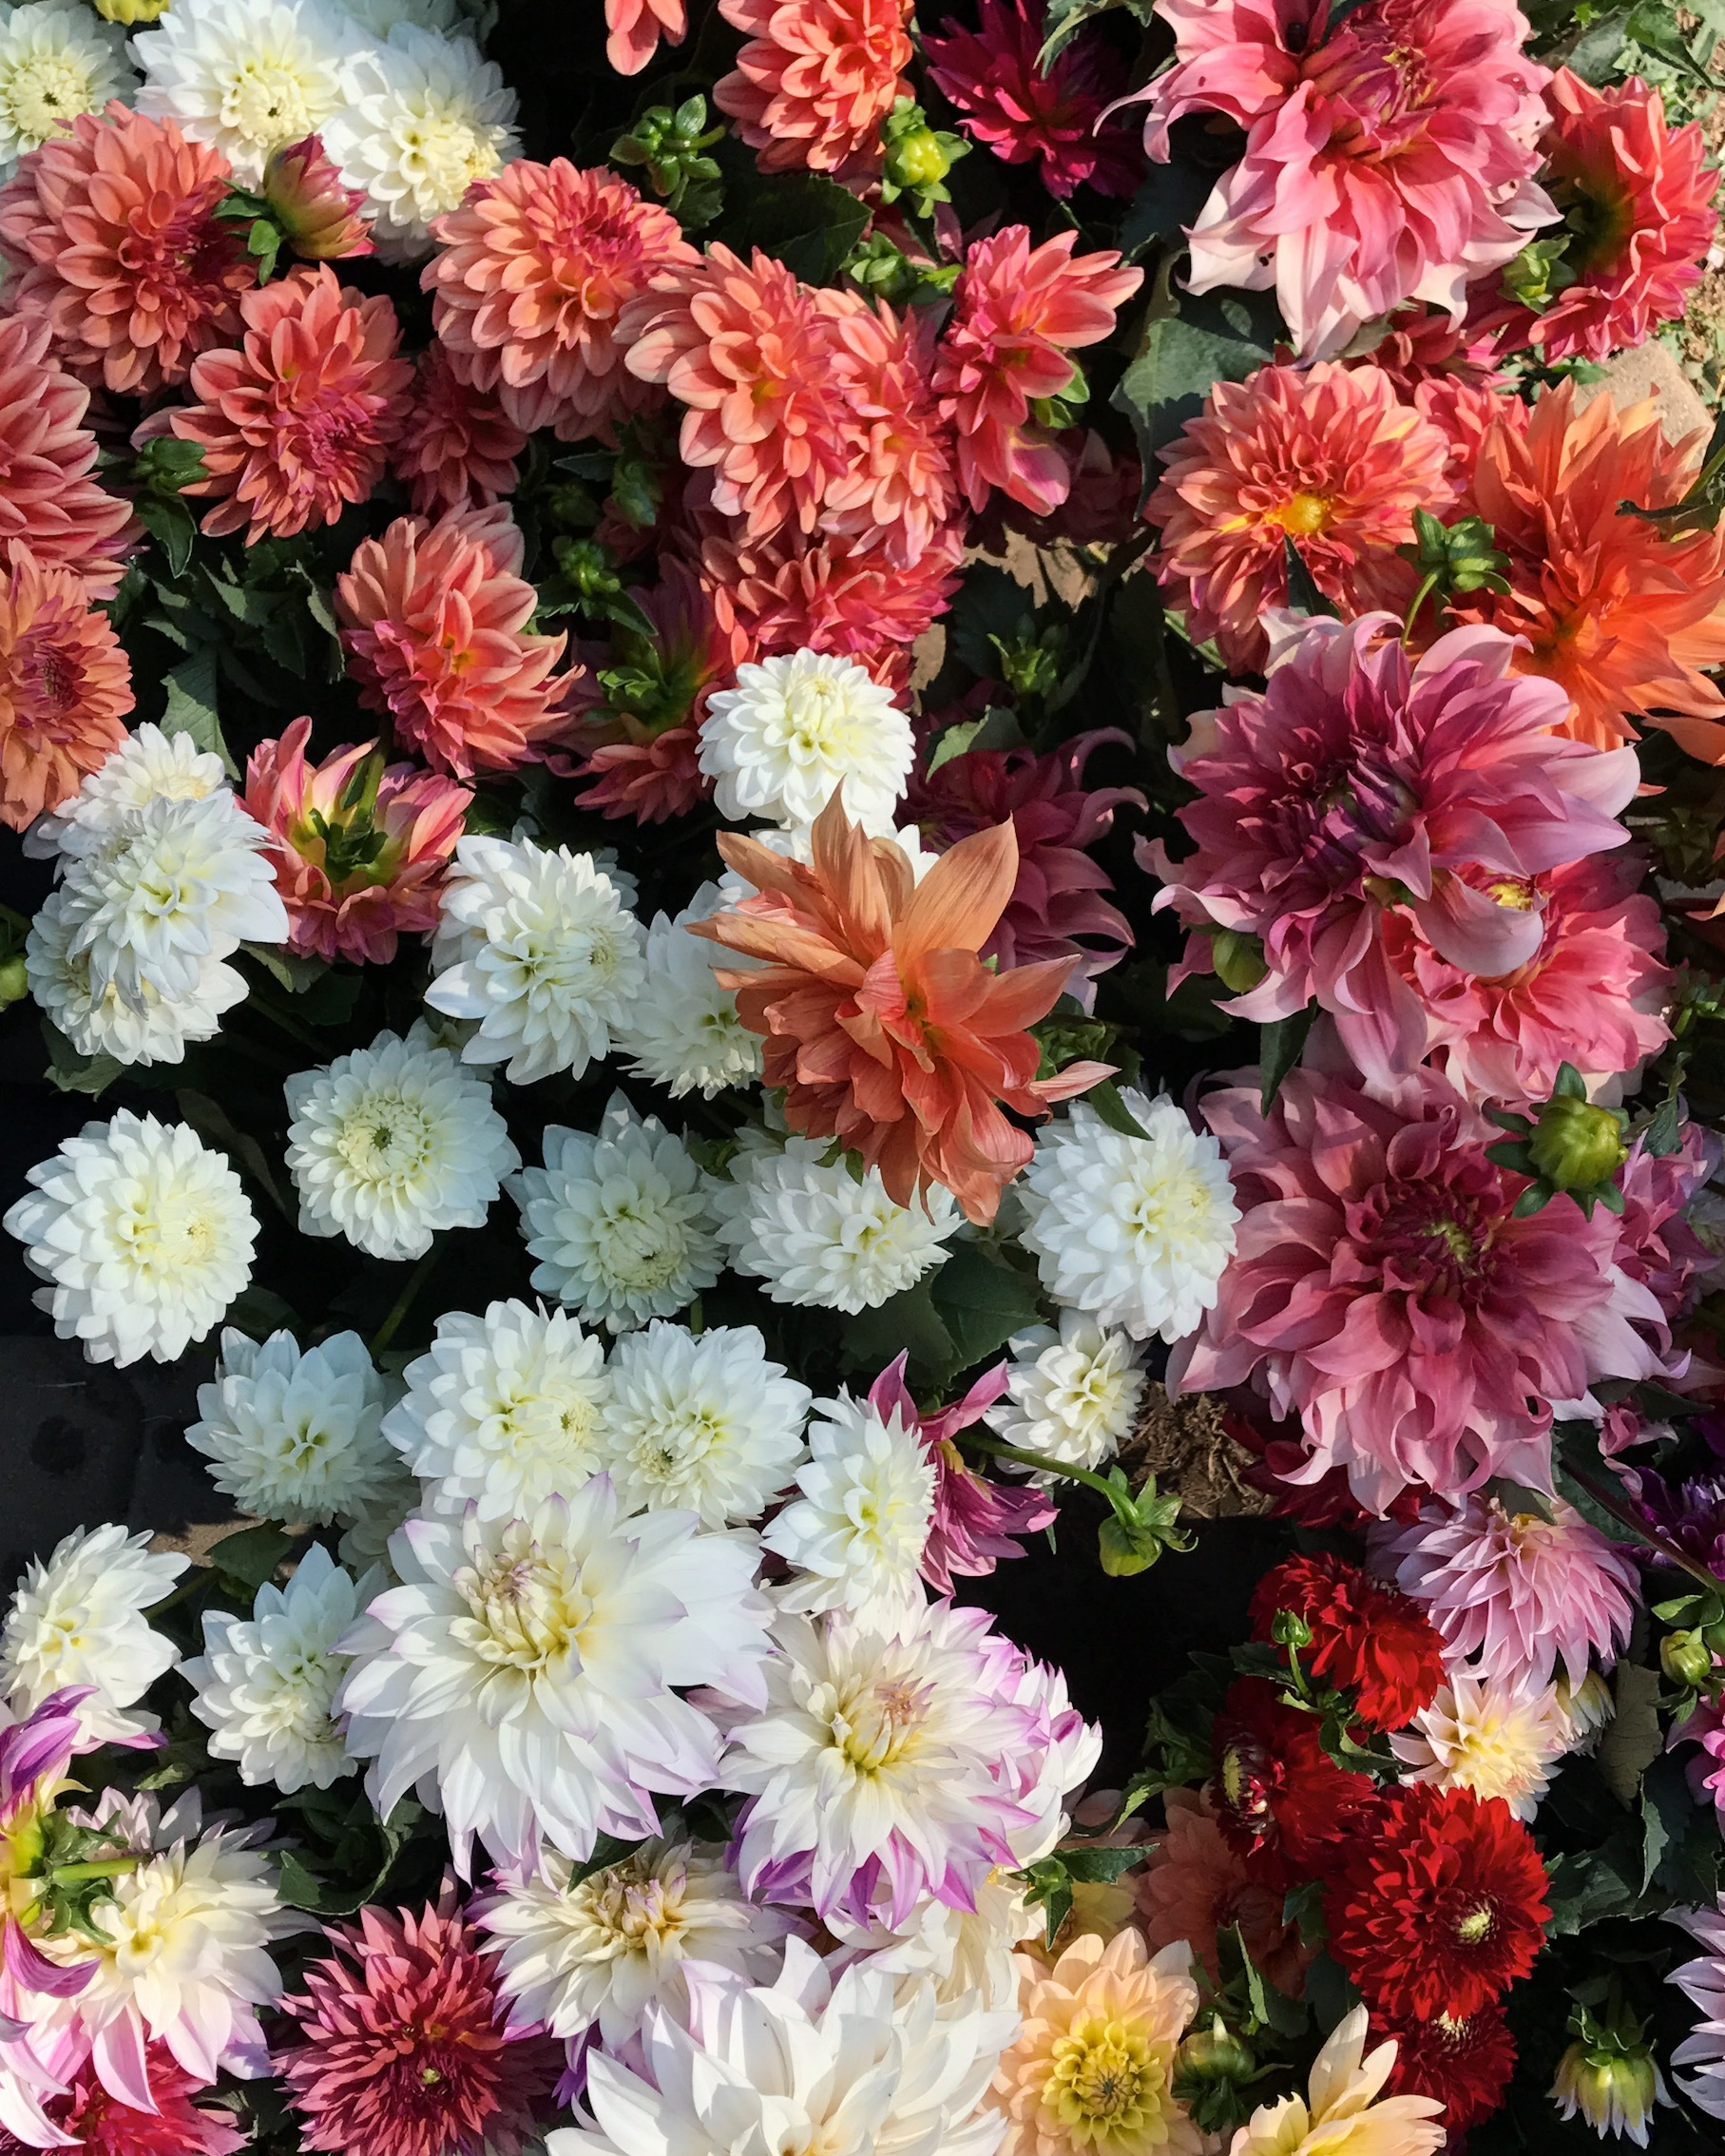 Dahlia's in the Burst + Bloom cooler. Image credit: Burst + Bloom.